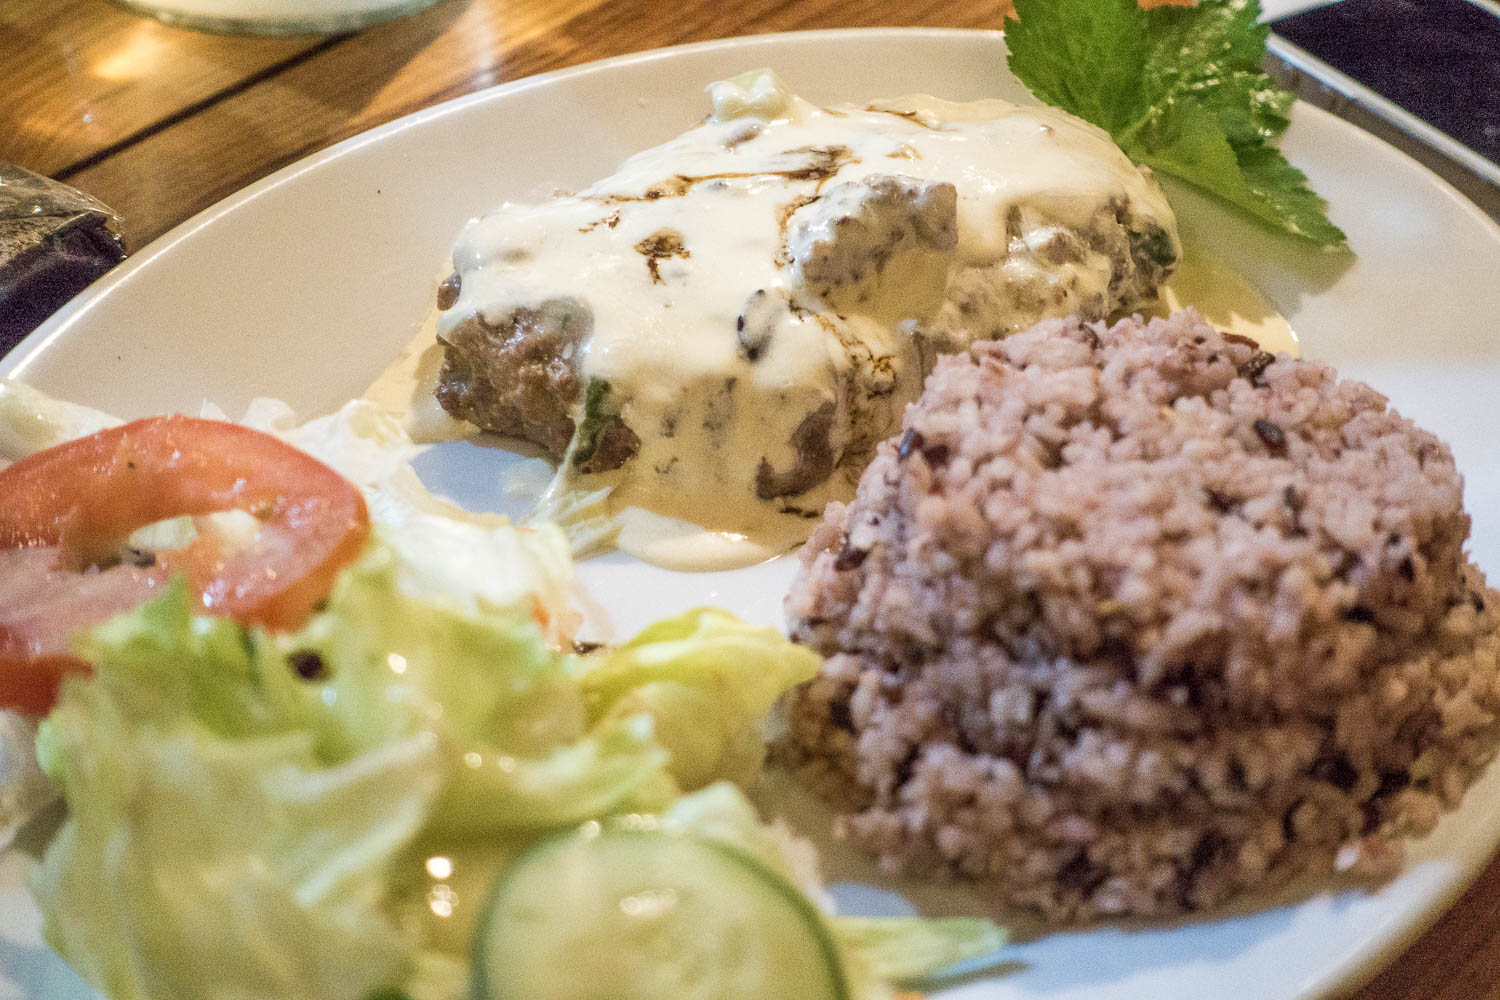 Sagada Brew 's Beef Burger Steak. Meat was ok, the rice was divine! We brought home a few packs of mountain rice and cooked it the Sagada way when we got to Manila -- ratio is 3 tbsps. of mountain rice for every cup of white rice. But soak the mountain rice first in water, keep in the refrigerator for at least 20 minutes (better overnight) prior to cooking.